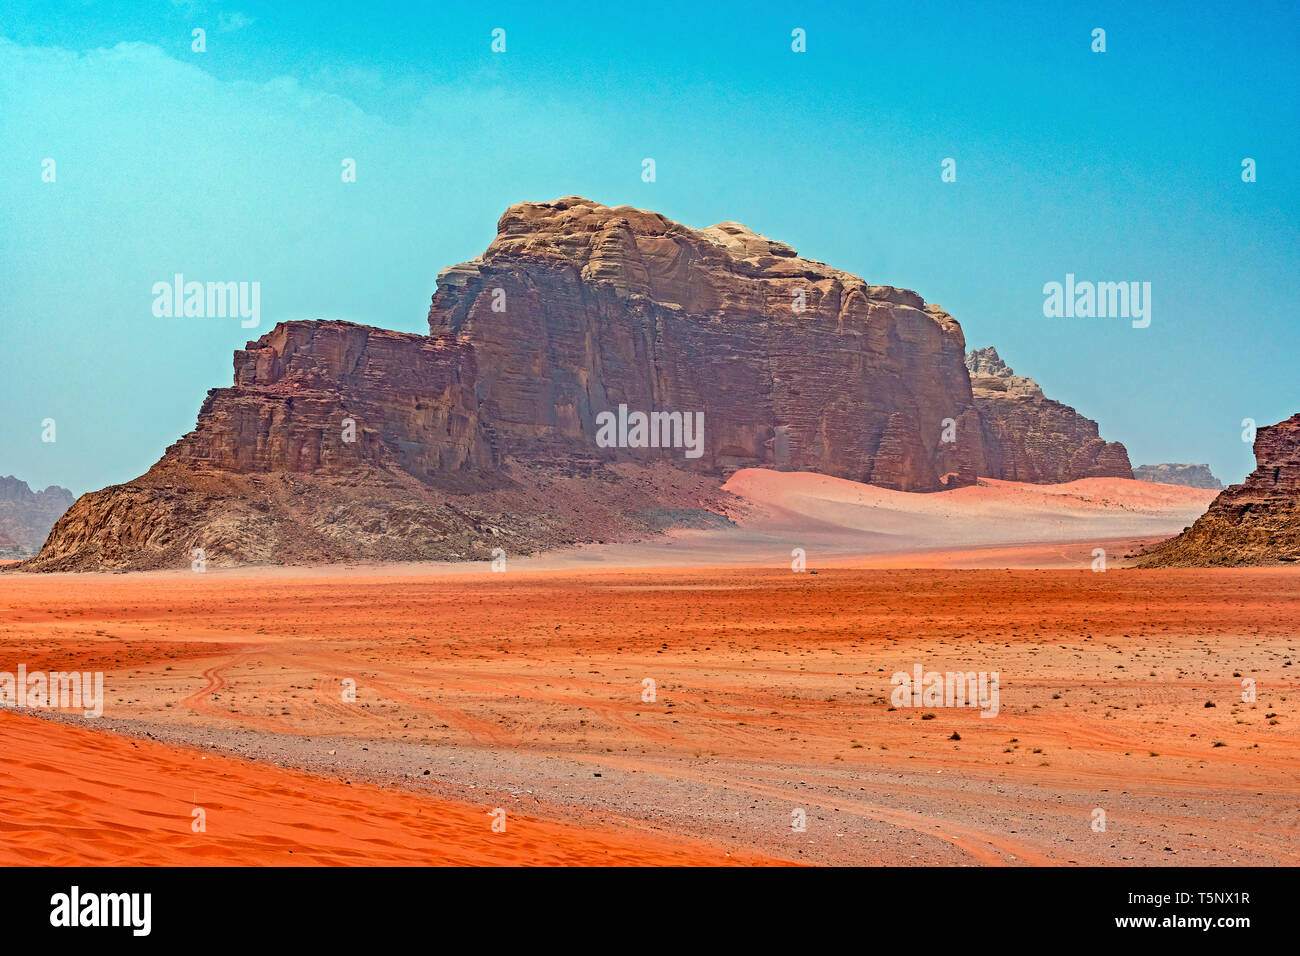 Distant Buttes in a Red Sand Desert in Wadi Rum in Jordan - Stock Image